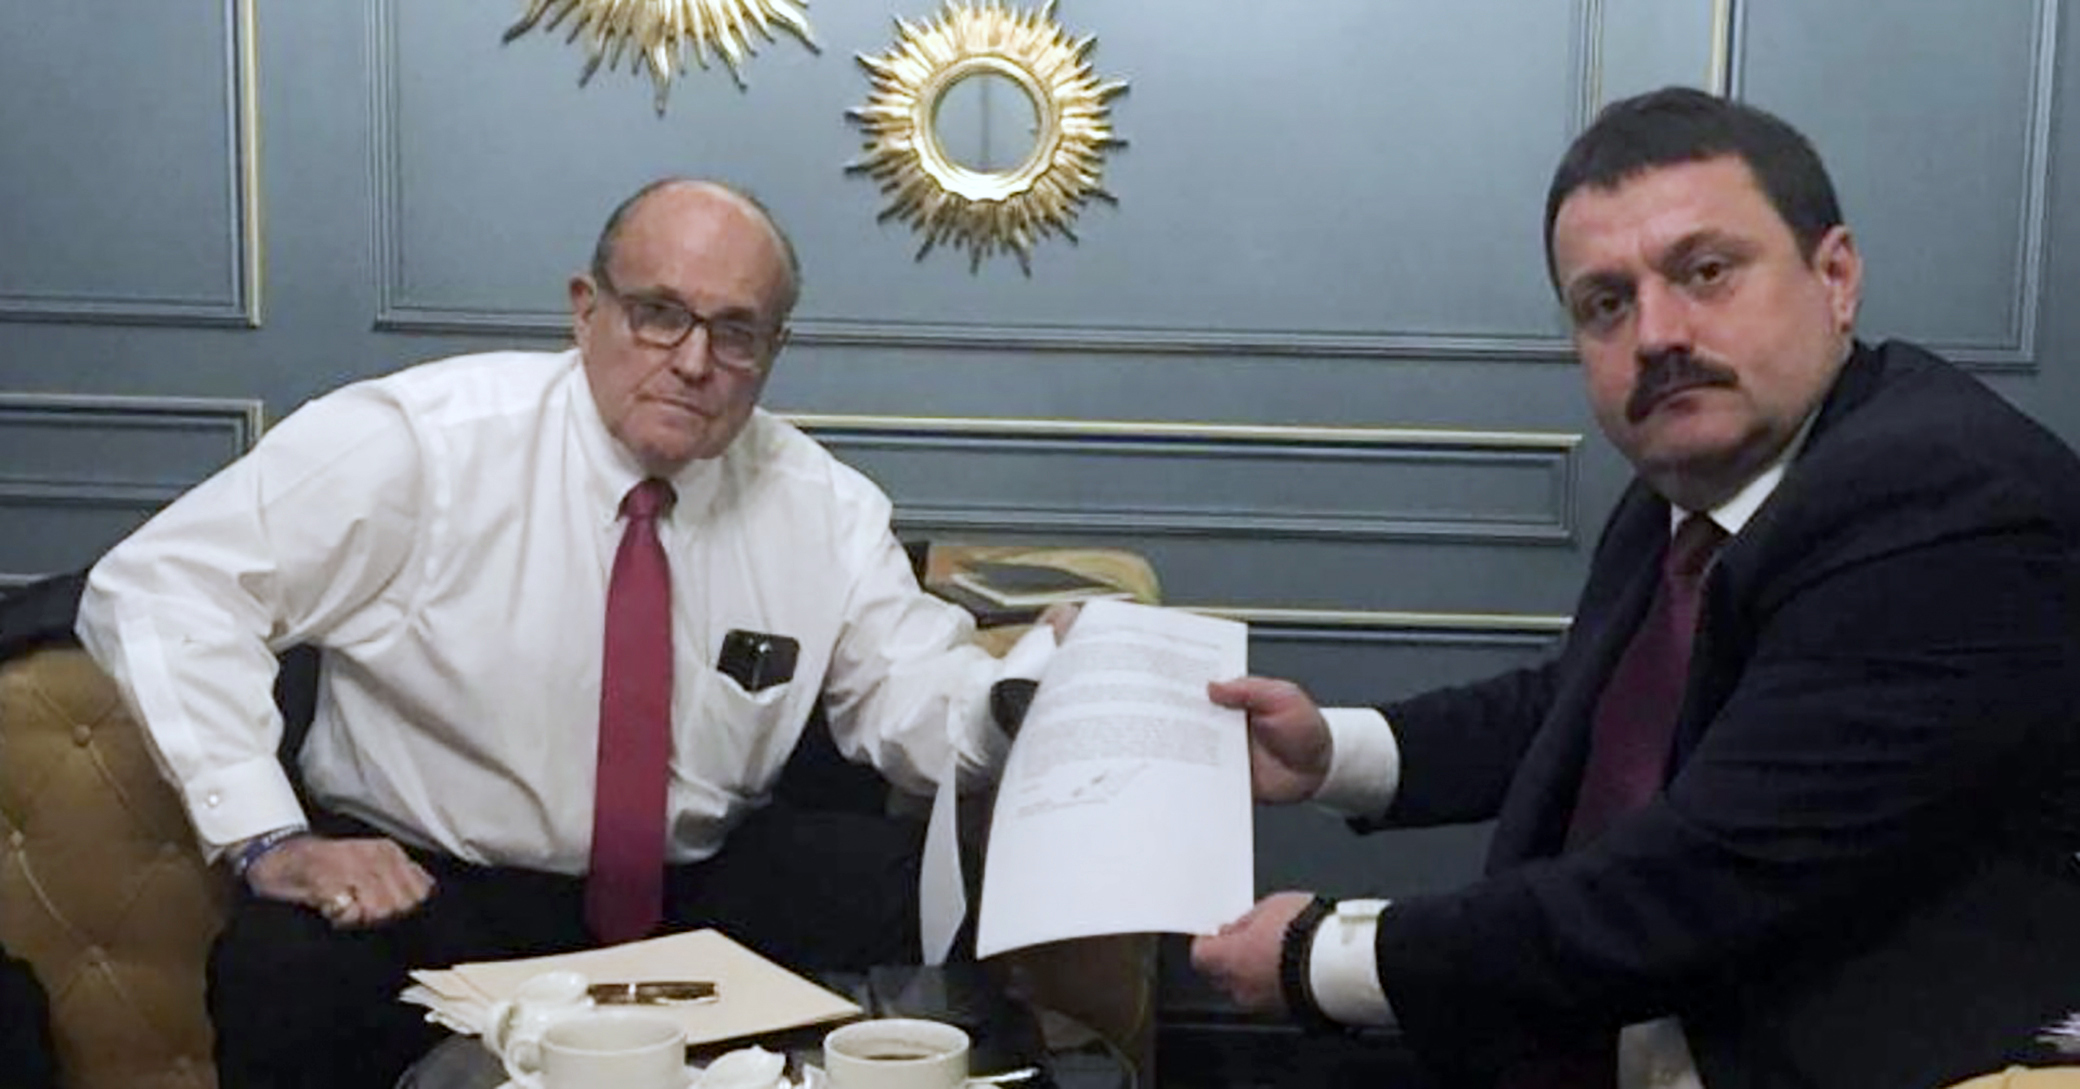 In this handout photo provided by Adriii Derkach's press office, Rudy Giuliani, an attorney for U.S President Donald Trump, left, meets in Kyiv, Ukraine, on Dec. 5, 2019 with Derkach, who was later named an  active Russian agent  by the U.S. government.